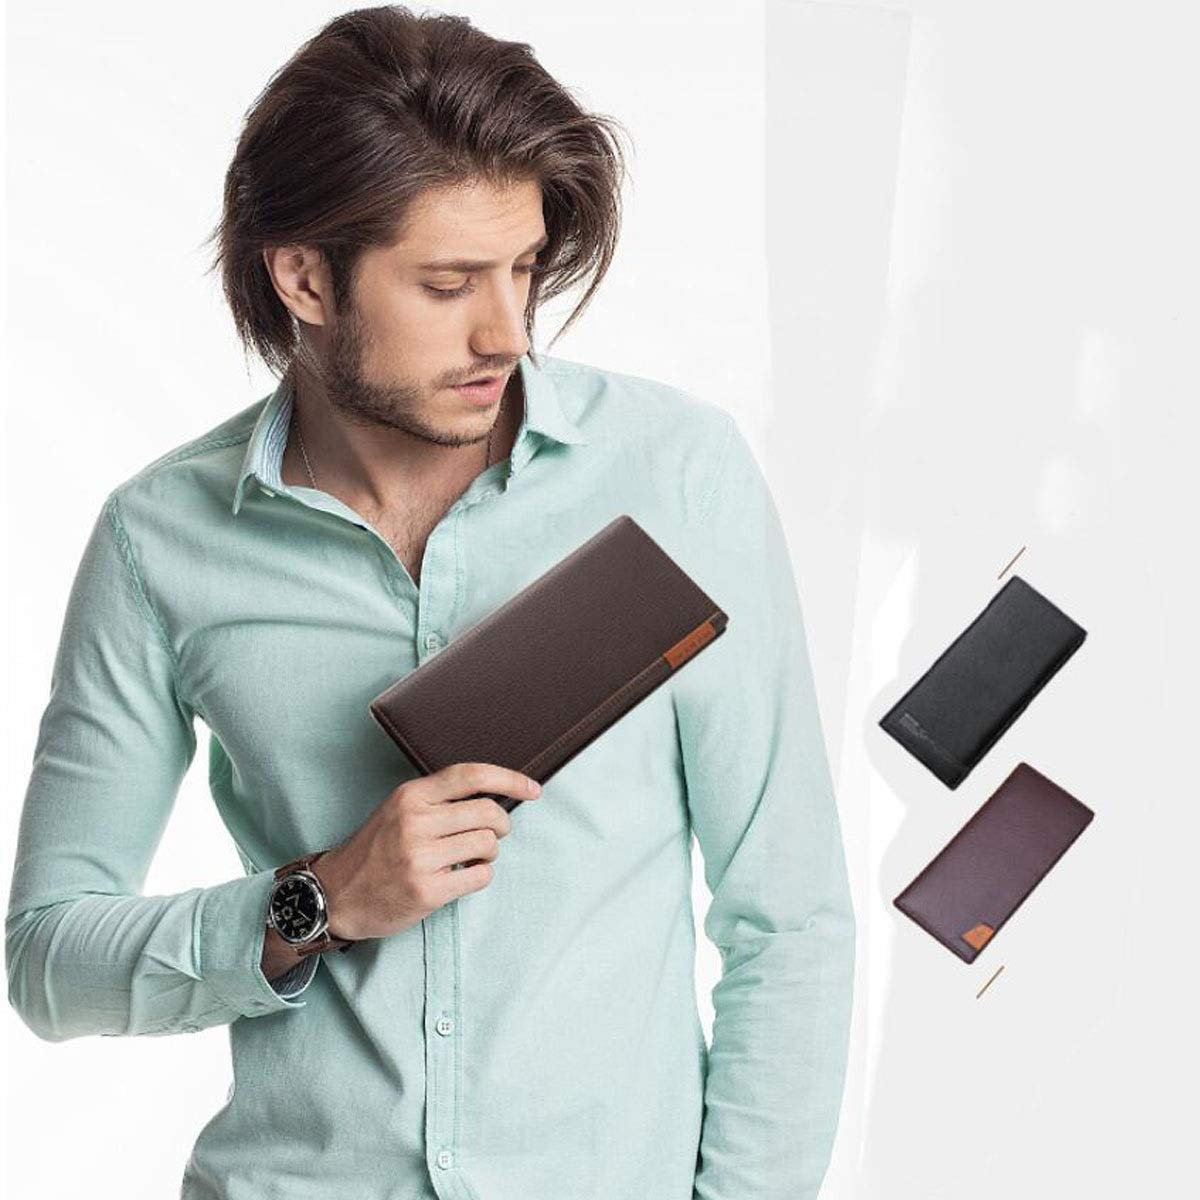 Color Brown Business Fashion Multi-Card Ultra-Thin Carrying Leather Wallet 18.5 1.5 9. Suitable for Mens Long cm Durable Color : B Brown, Size : 18.51.59 Aishanghuayi Wallet Size,